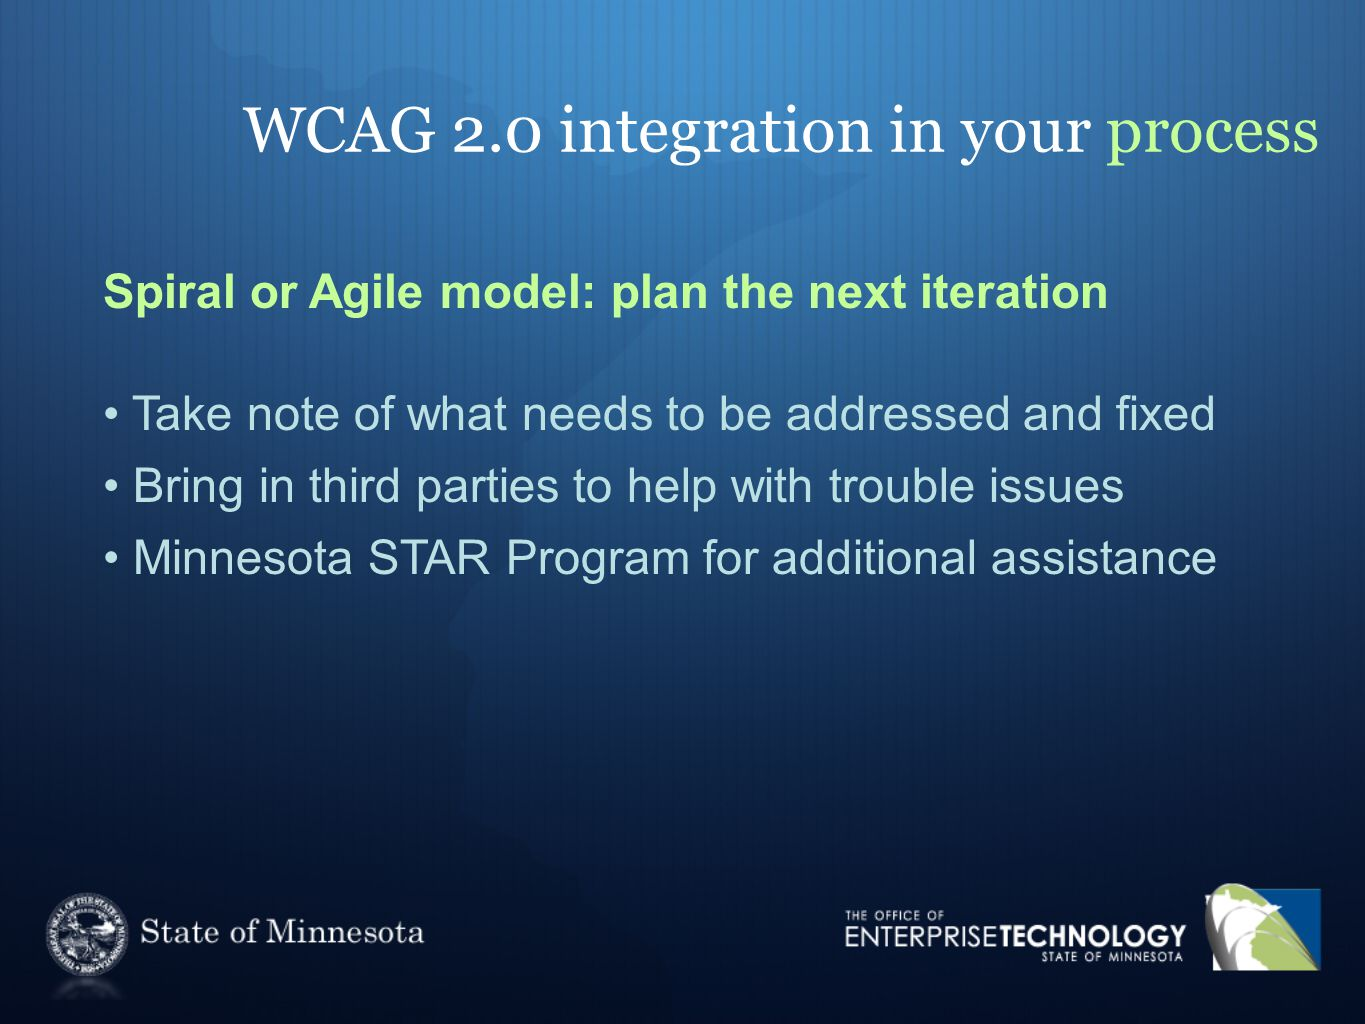 WCAG 2.0 integration in your process Spiral or Agile model: plan the next iteration Take note of what needs to be addressed and fixed Bring in third parties to help with trouble issues Minnesota STAR Program for additional assistance